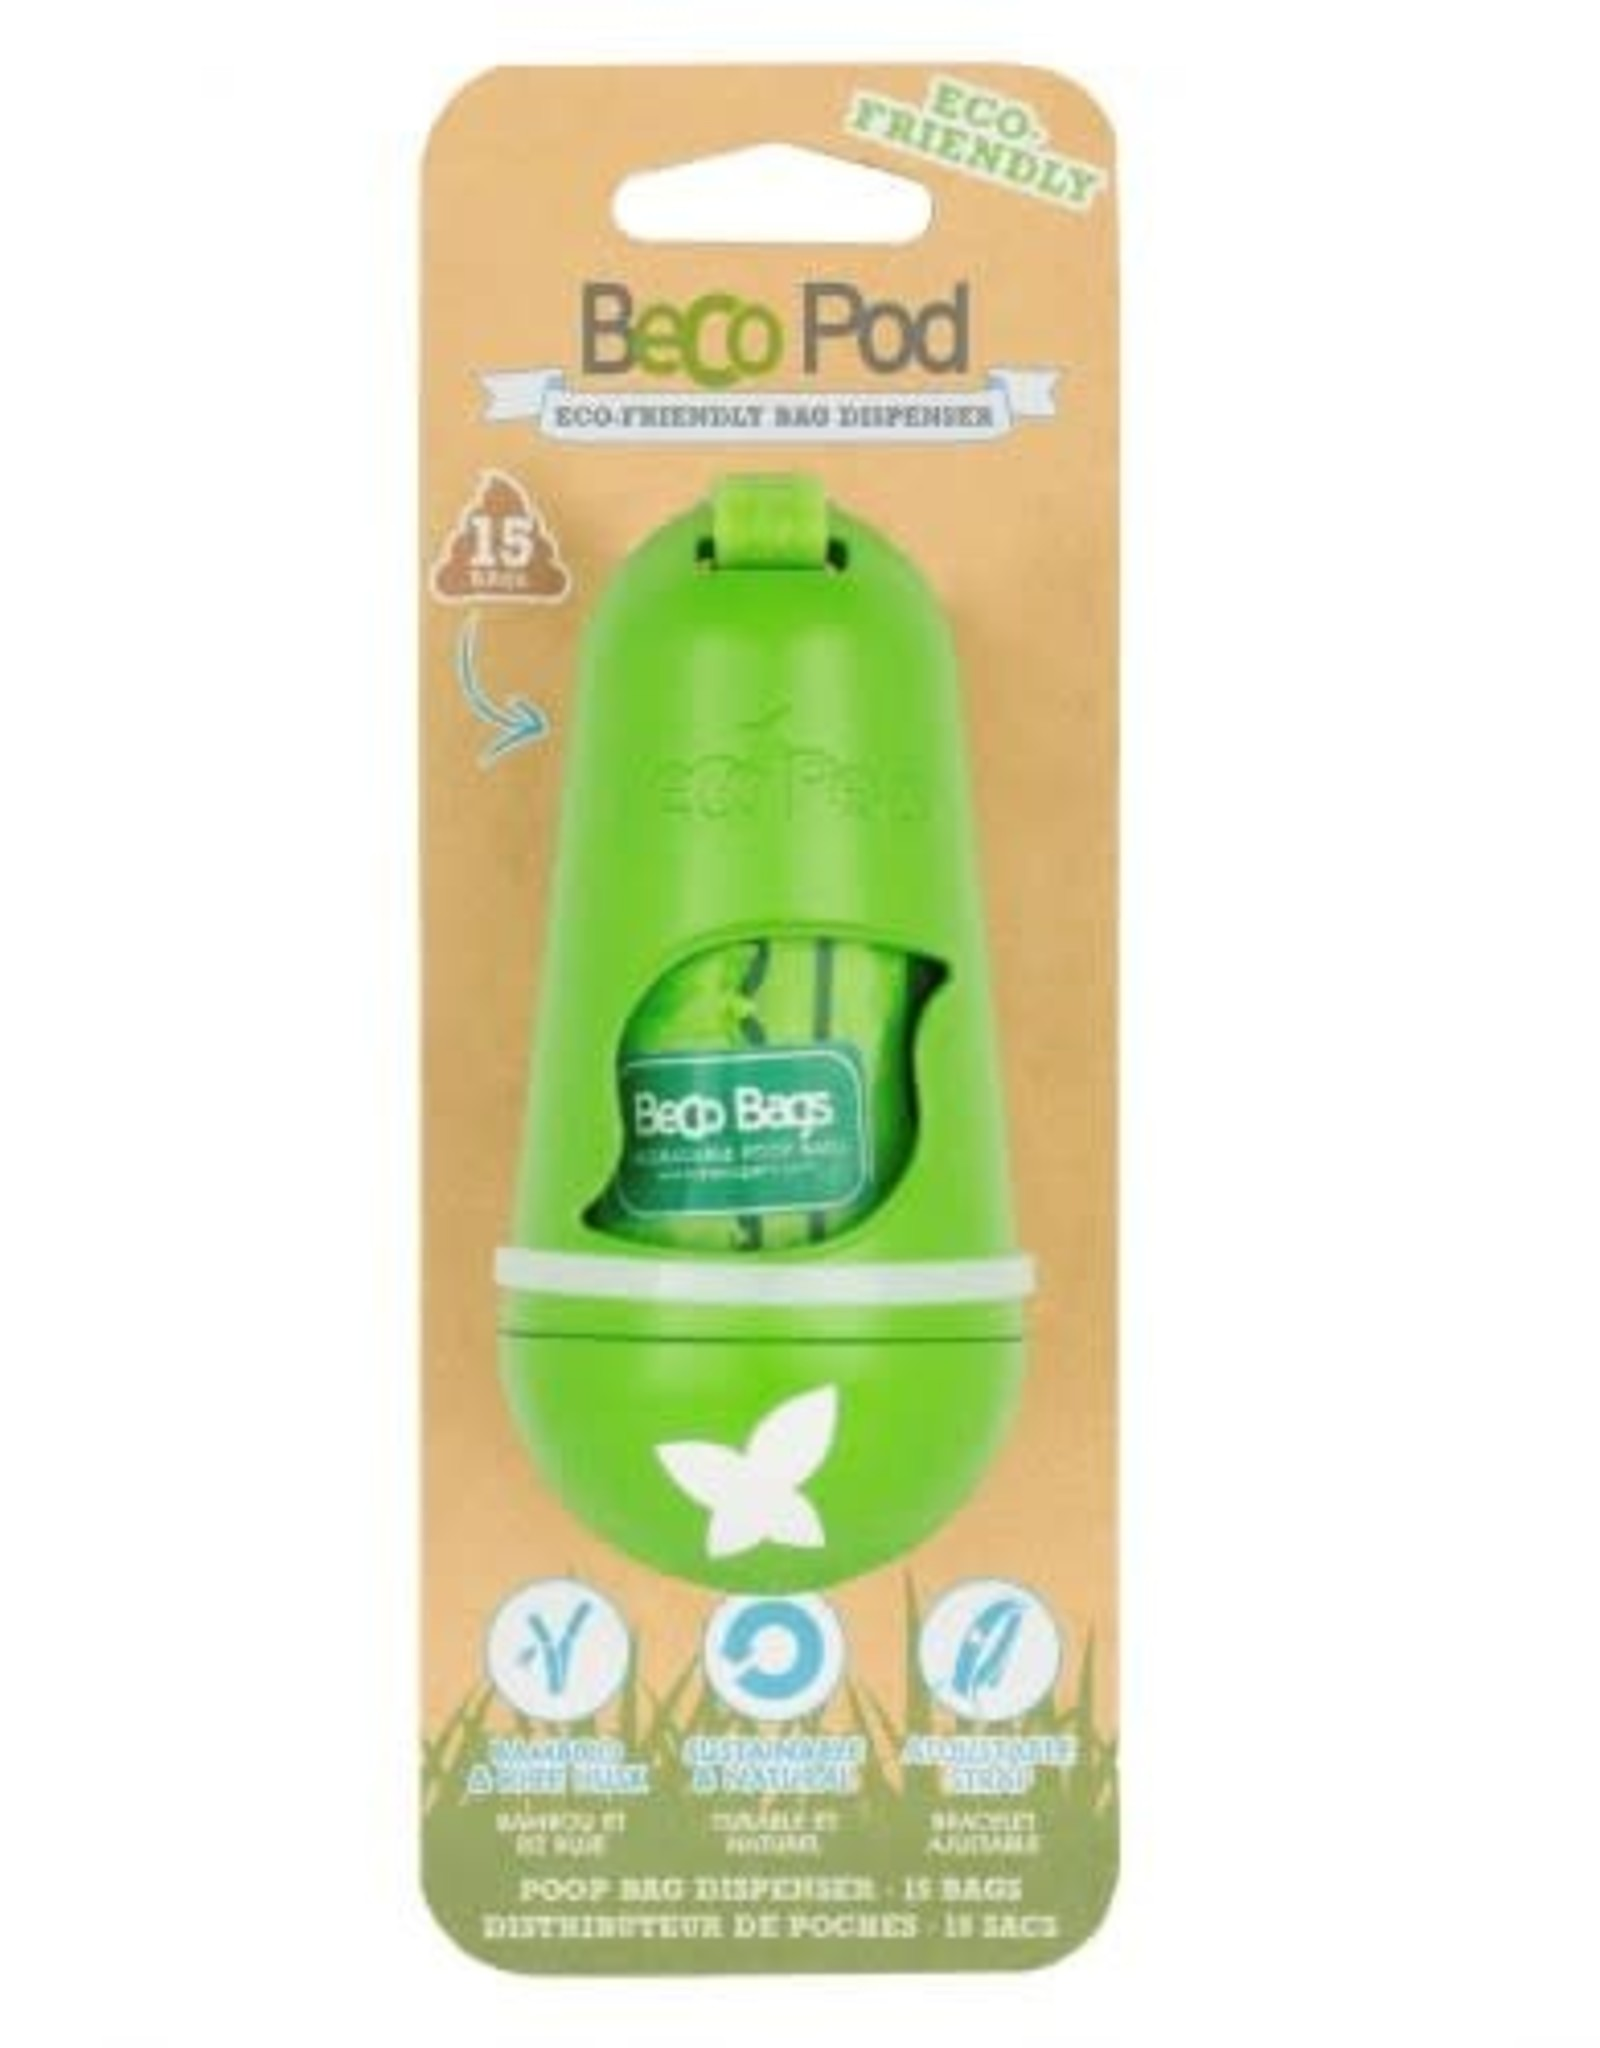 Beco Eco-Friendly Bamboo Pod Poop Bag Dispenser, Green